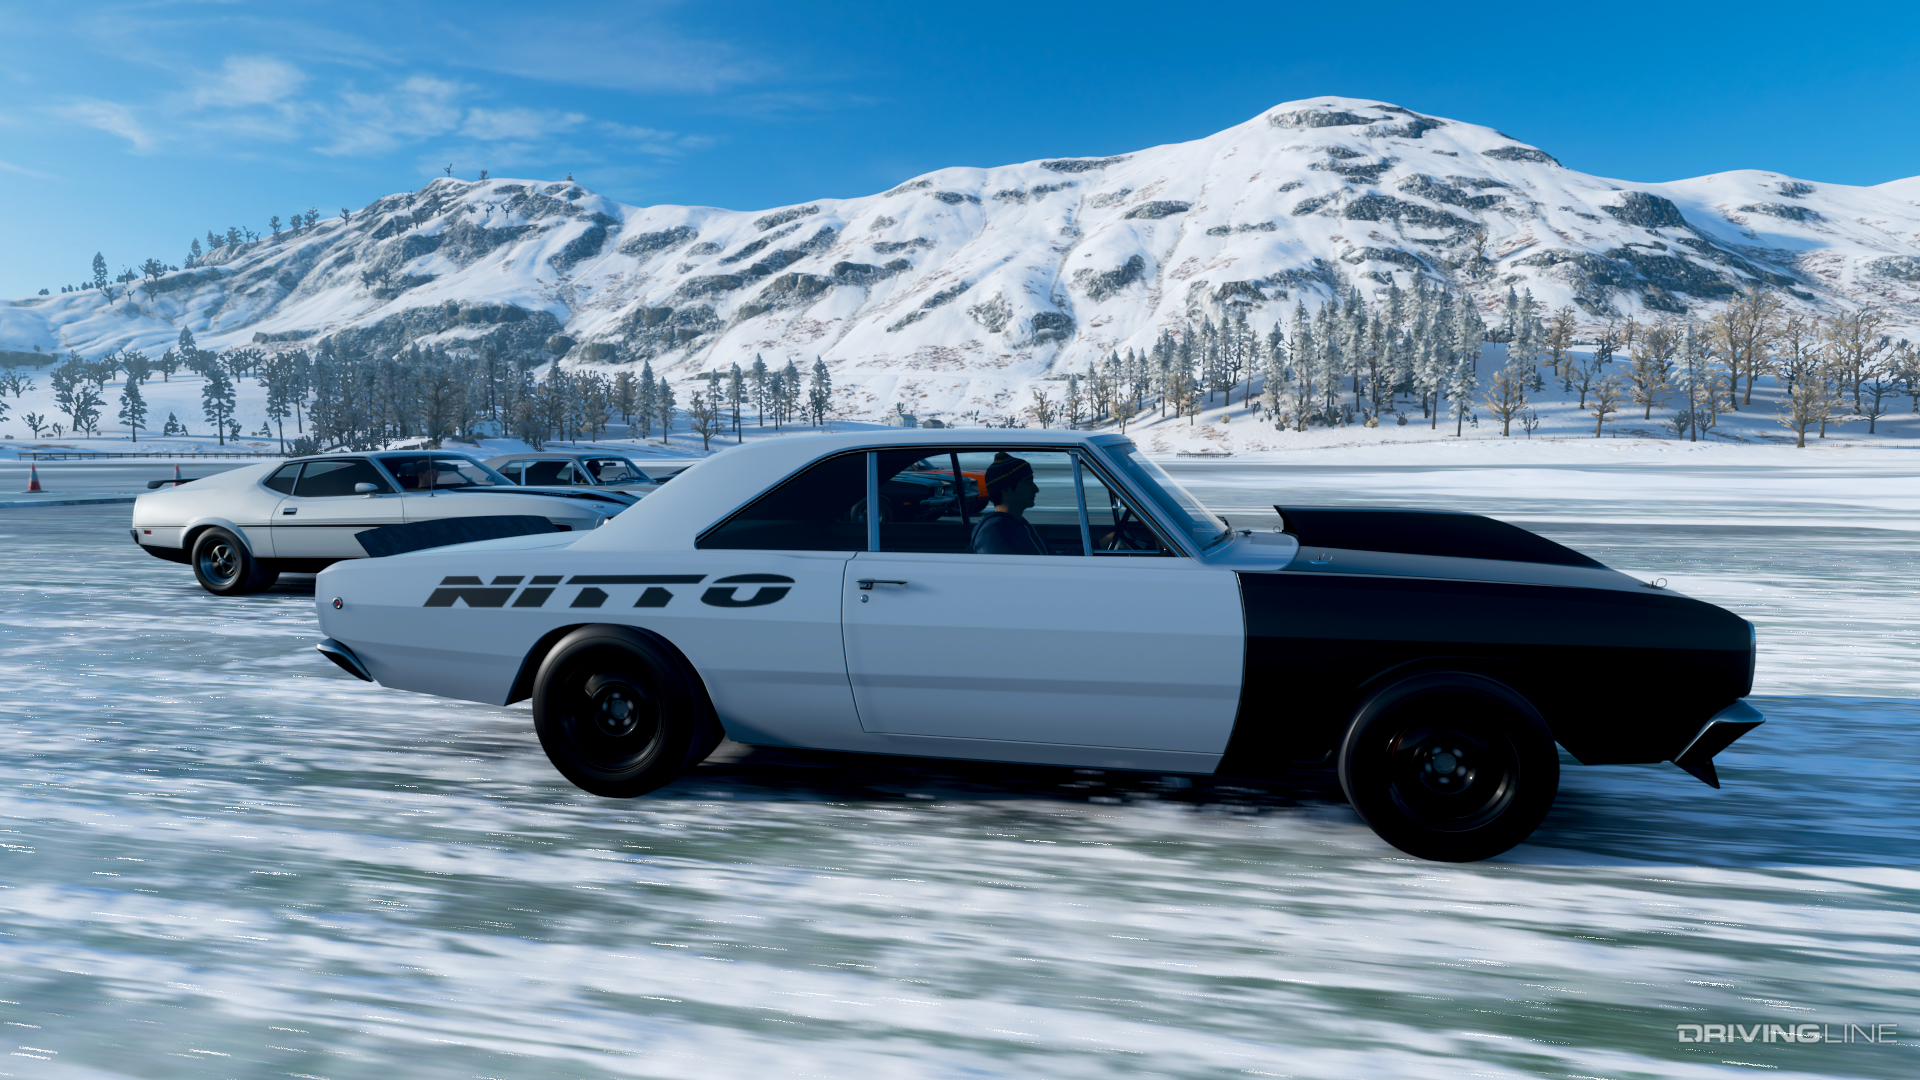 Fastest Stock Diesel Truck >> Fastest Car in Forza Horizon 4 for Each Drag Strip ...